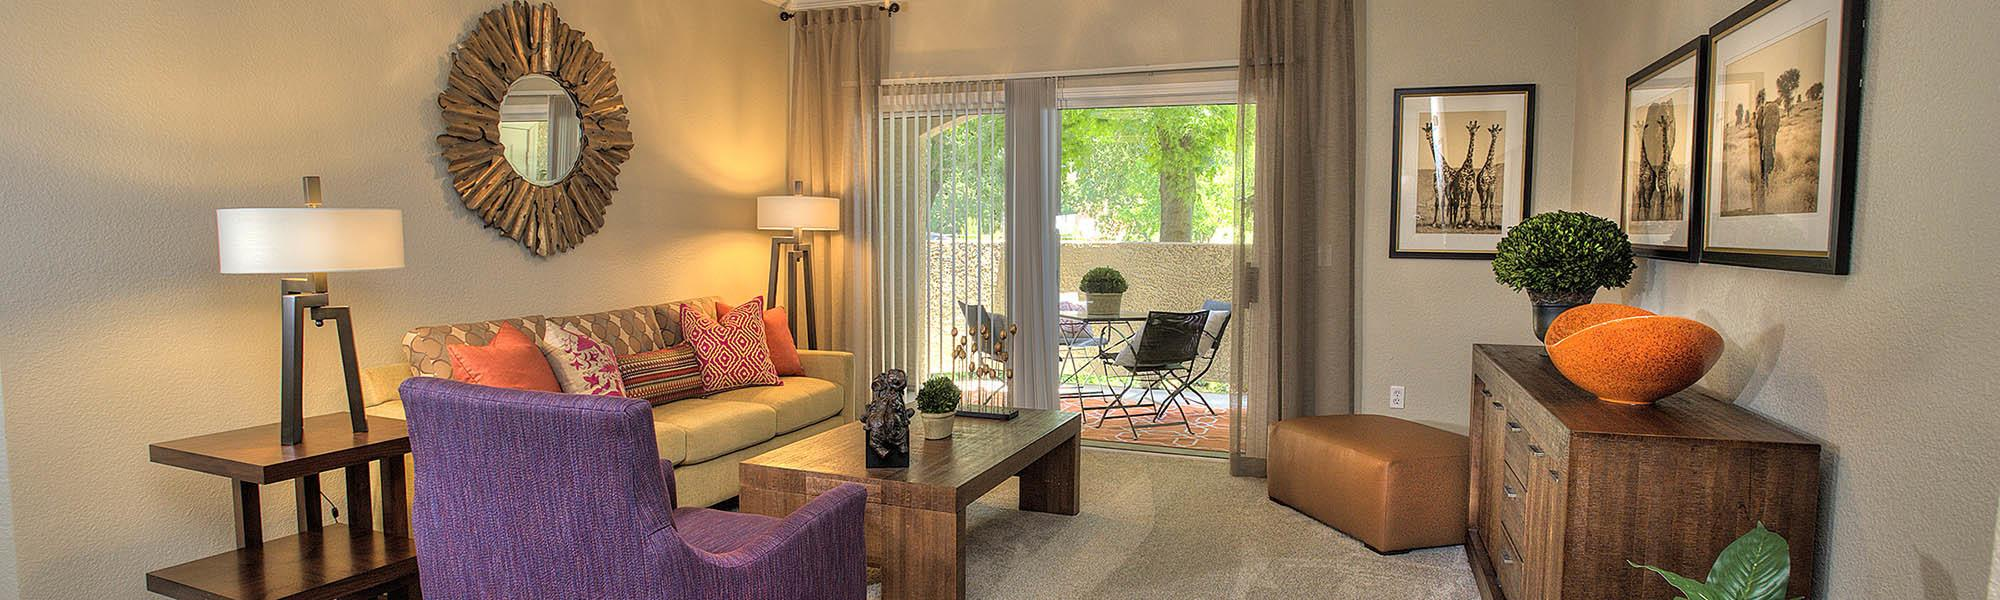 View photos of our luxurious property at River Oaks Apartment Homes in Vacaville, CA